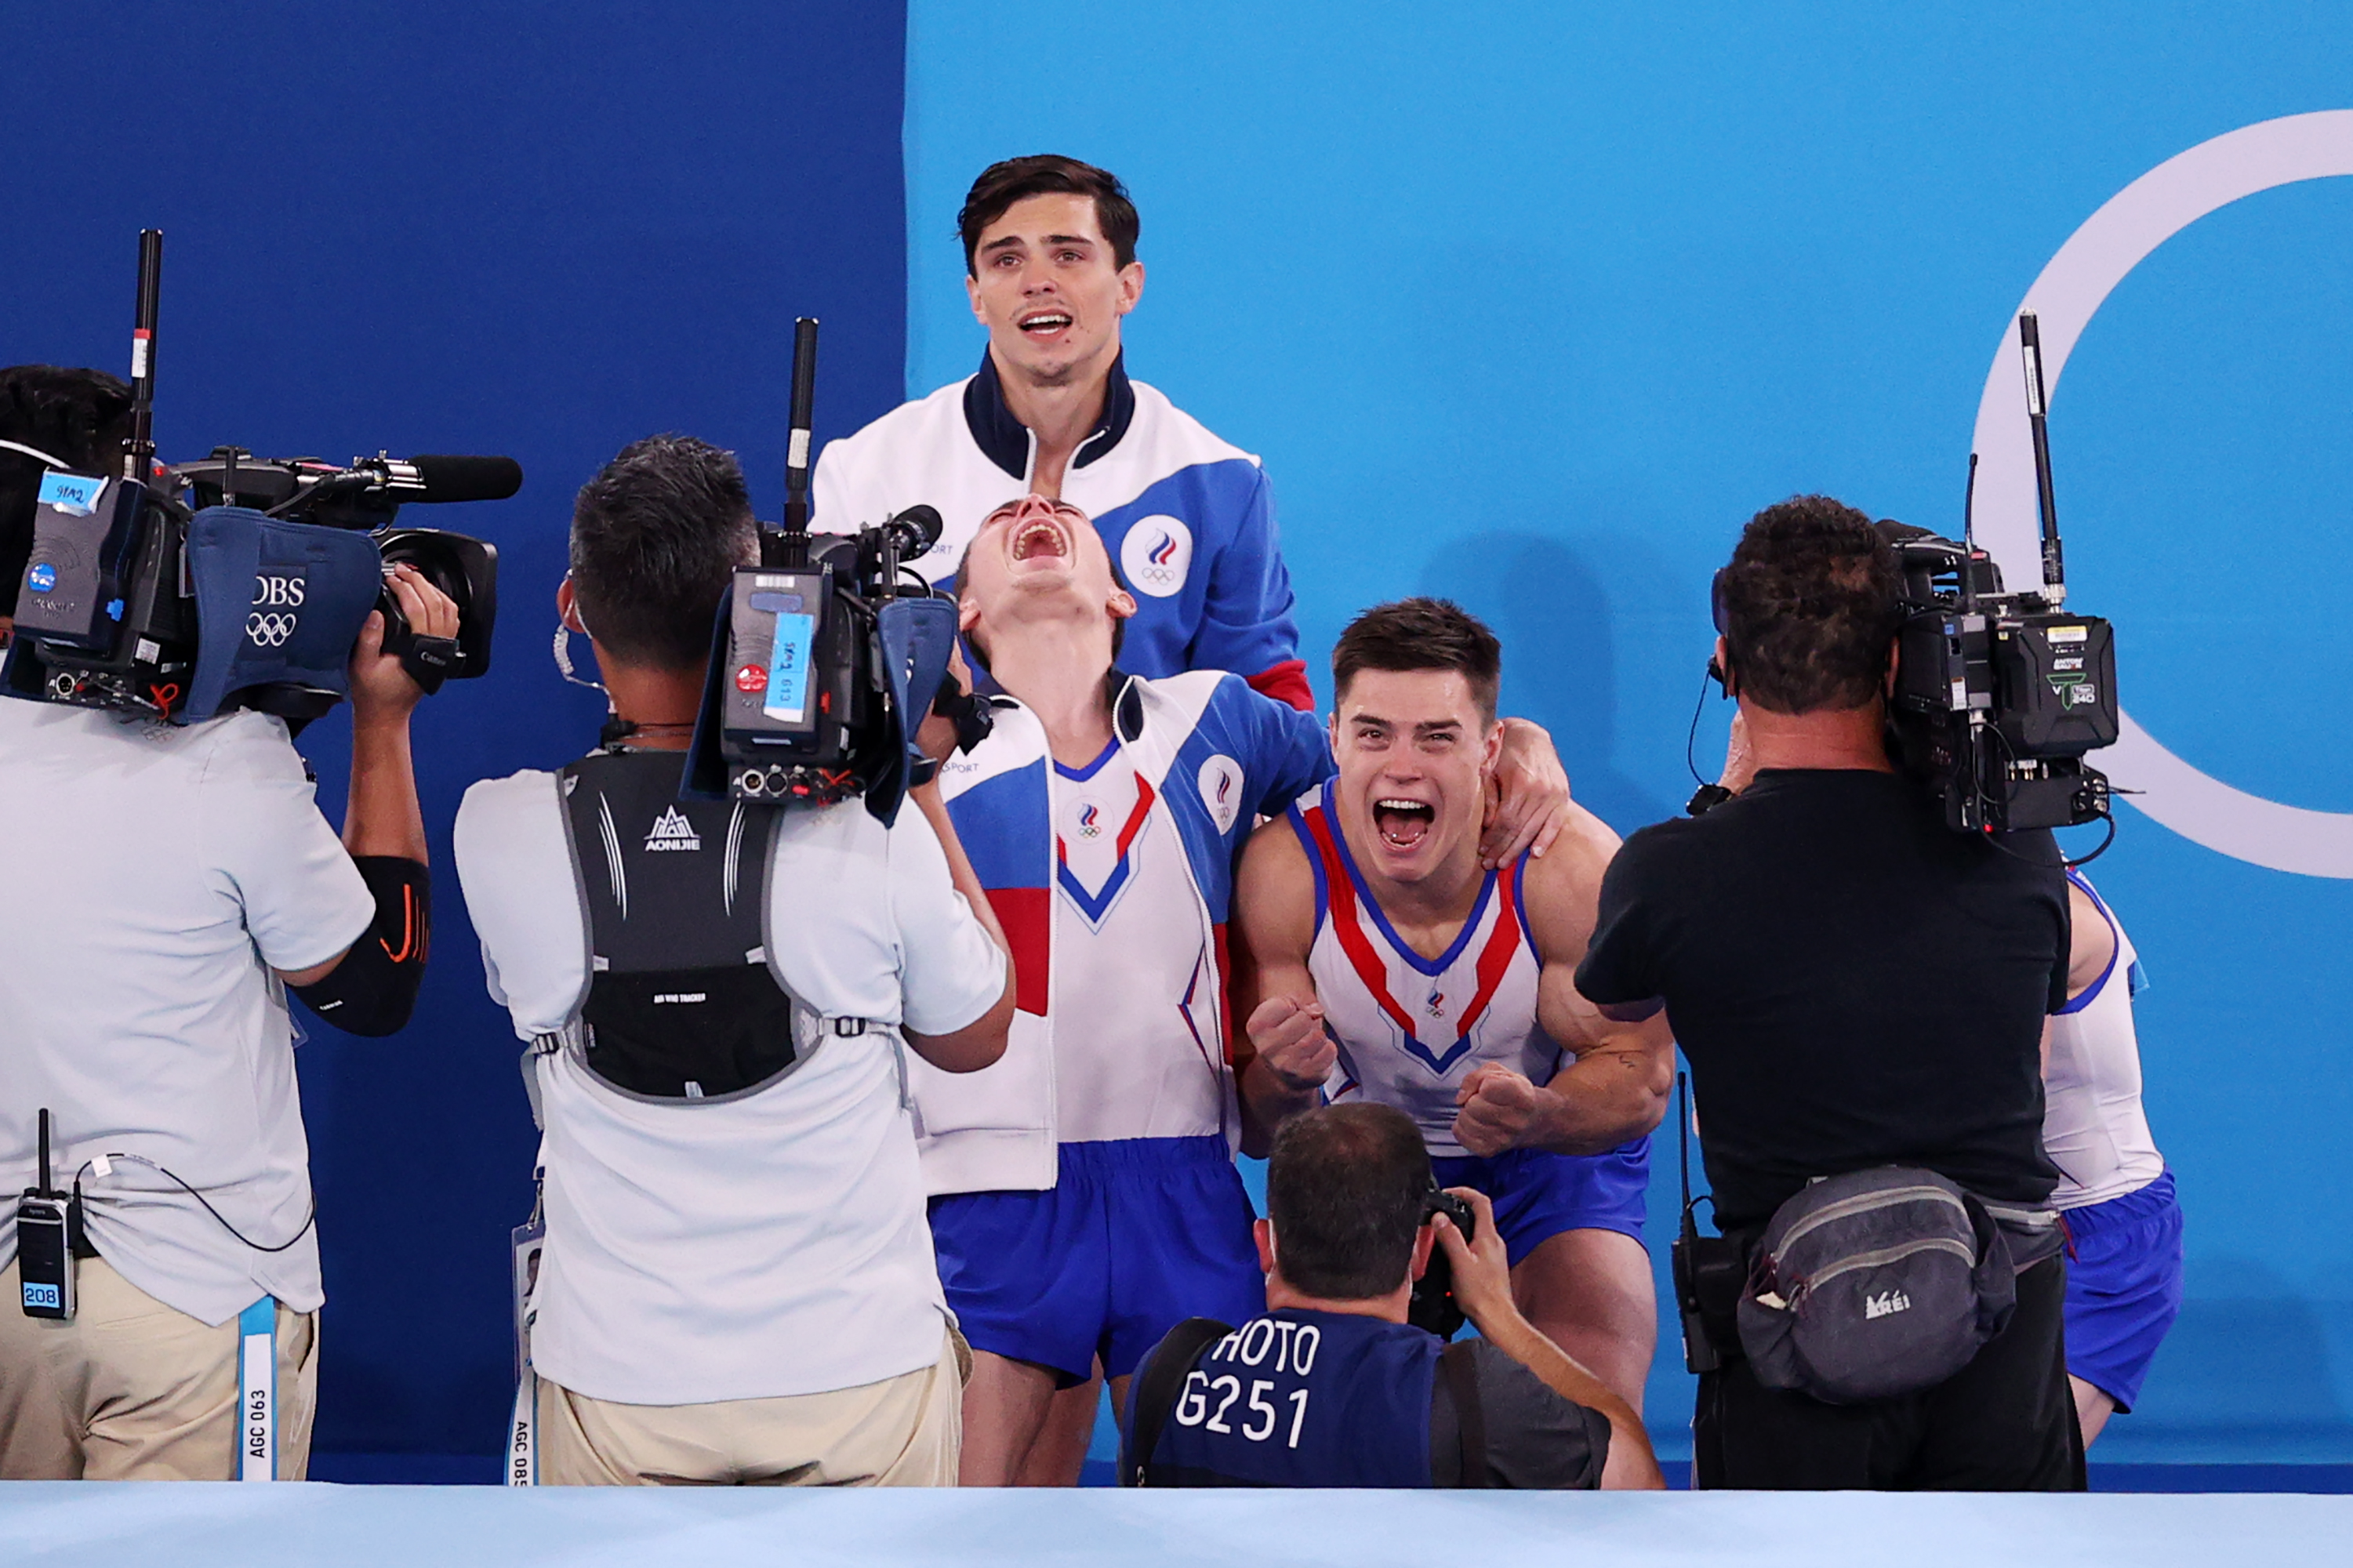 The Russian Olympic Committee celebrates after winning gold during the Men's Team Final on July 26.